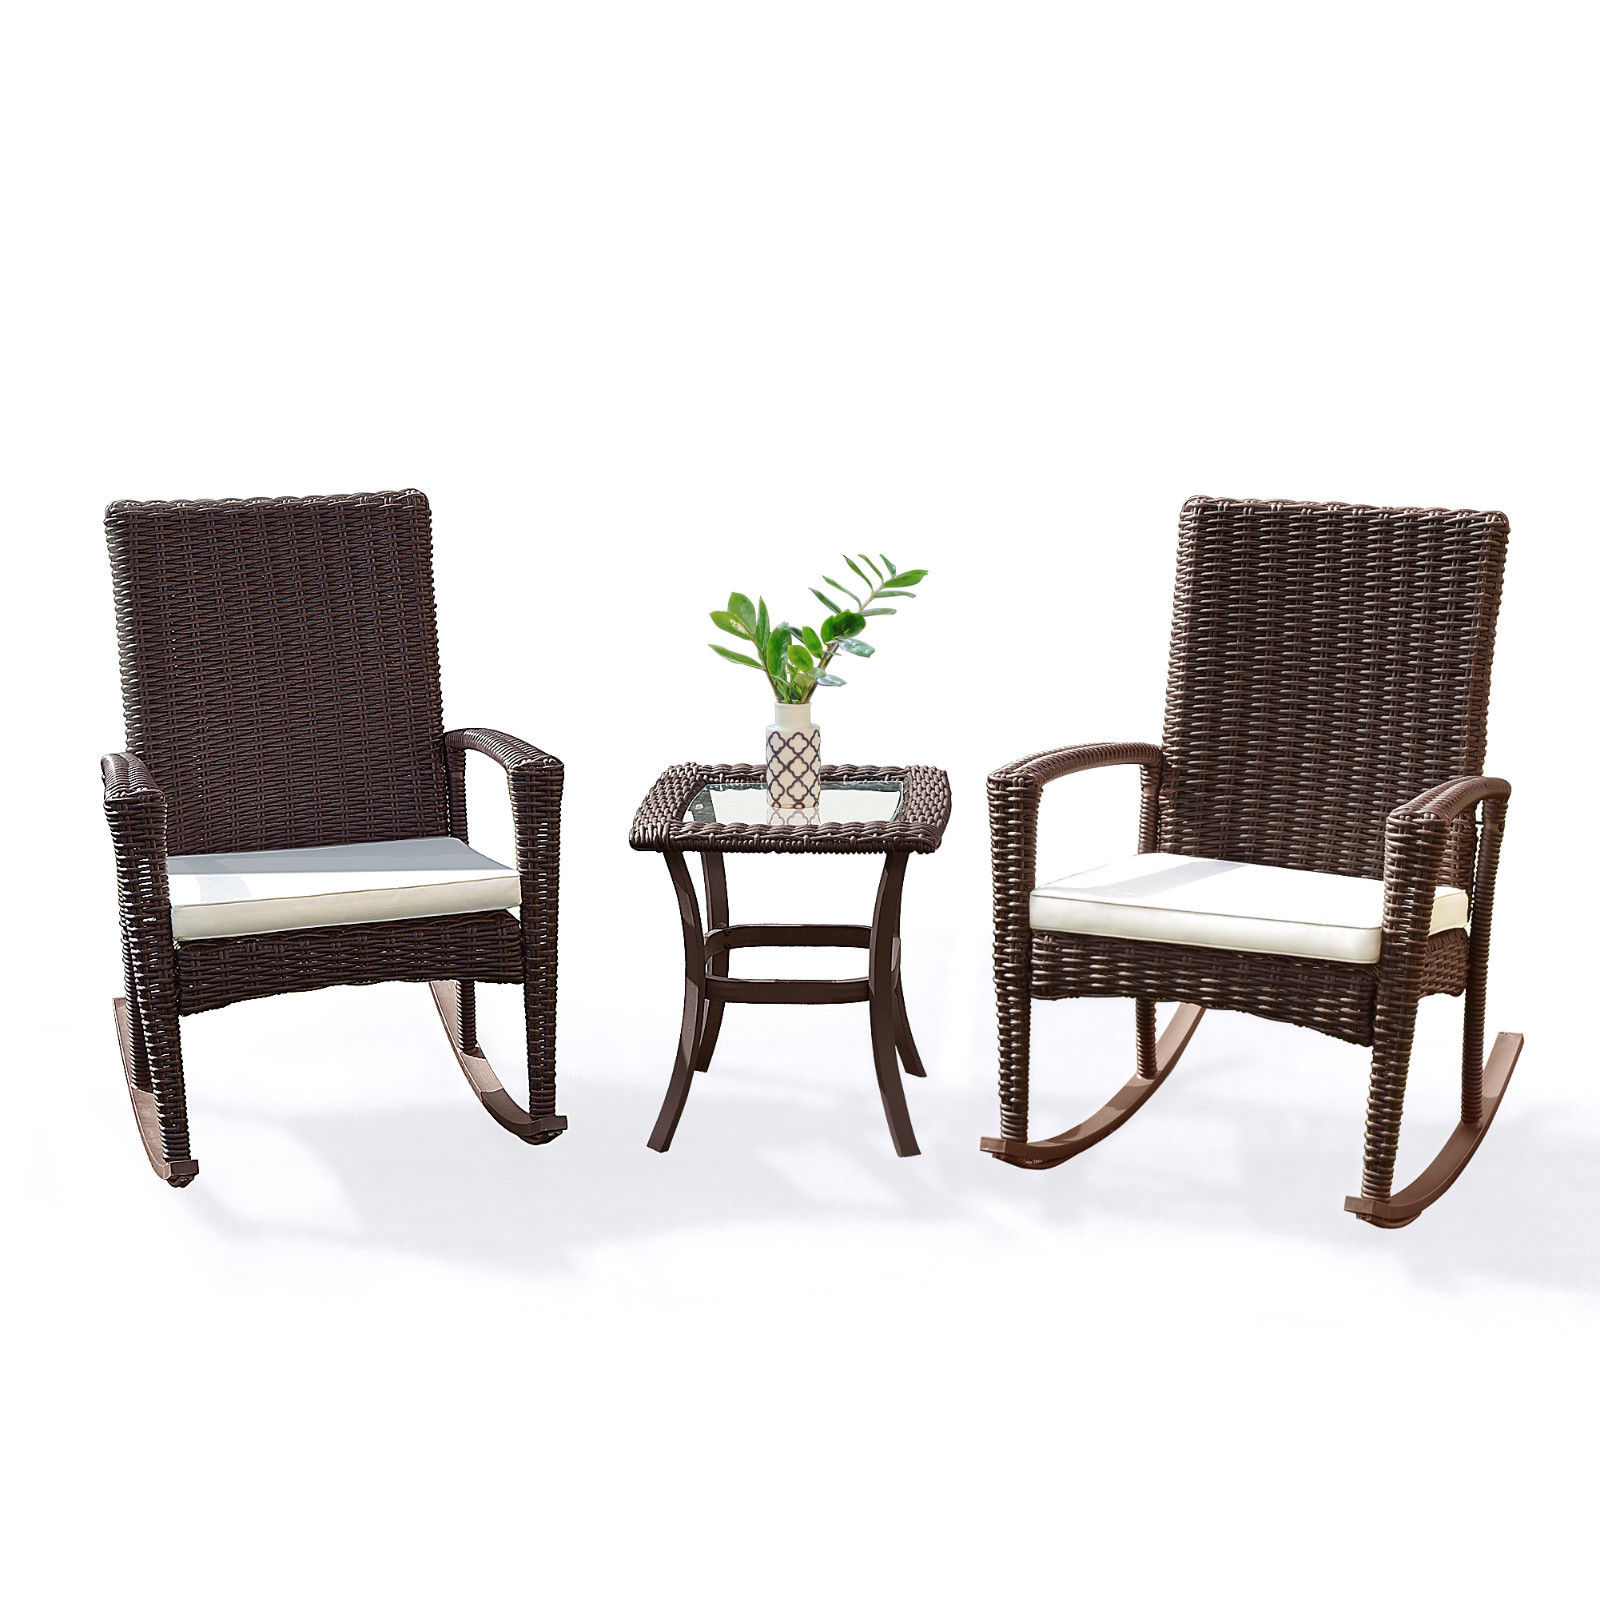 Gymax 3PC Patio Rattan Wicker Furniture Set Cushioned Outdoor Garden by Gymax